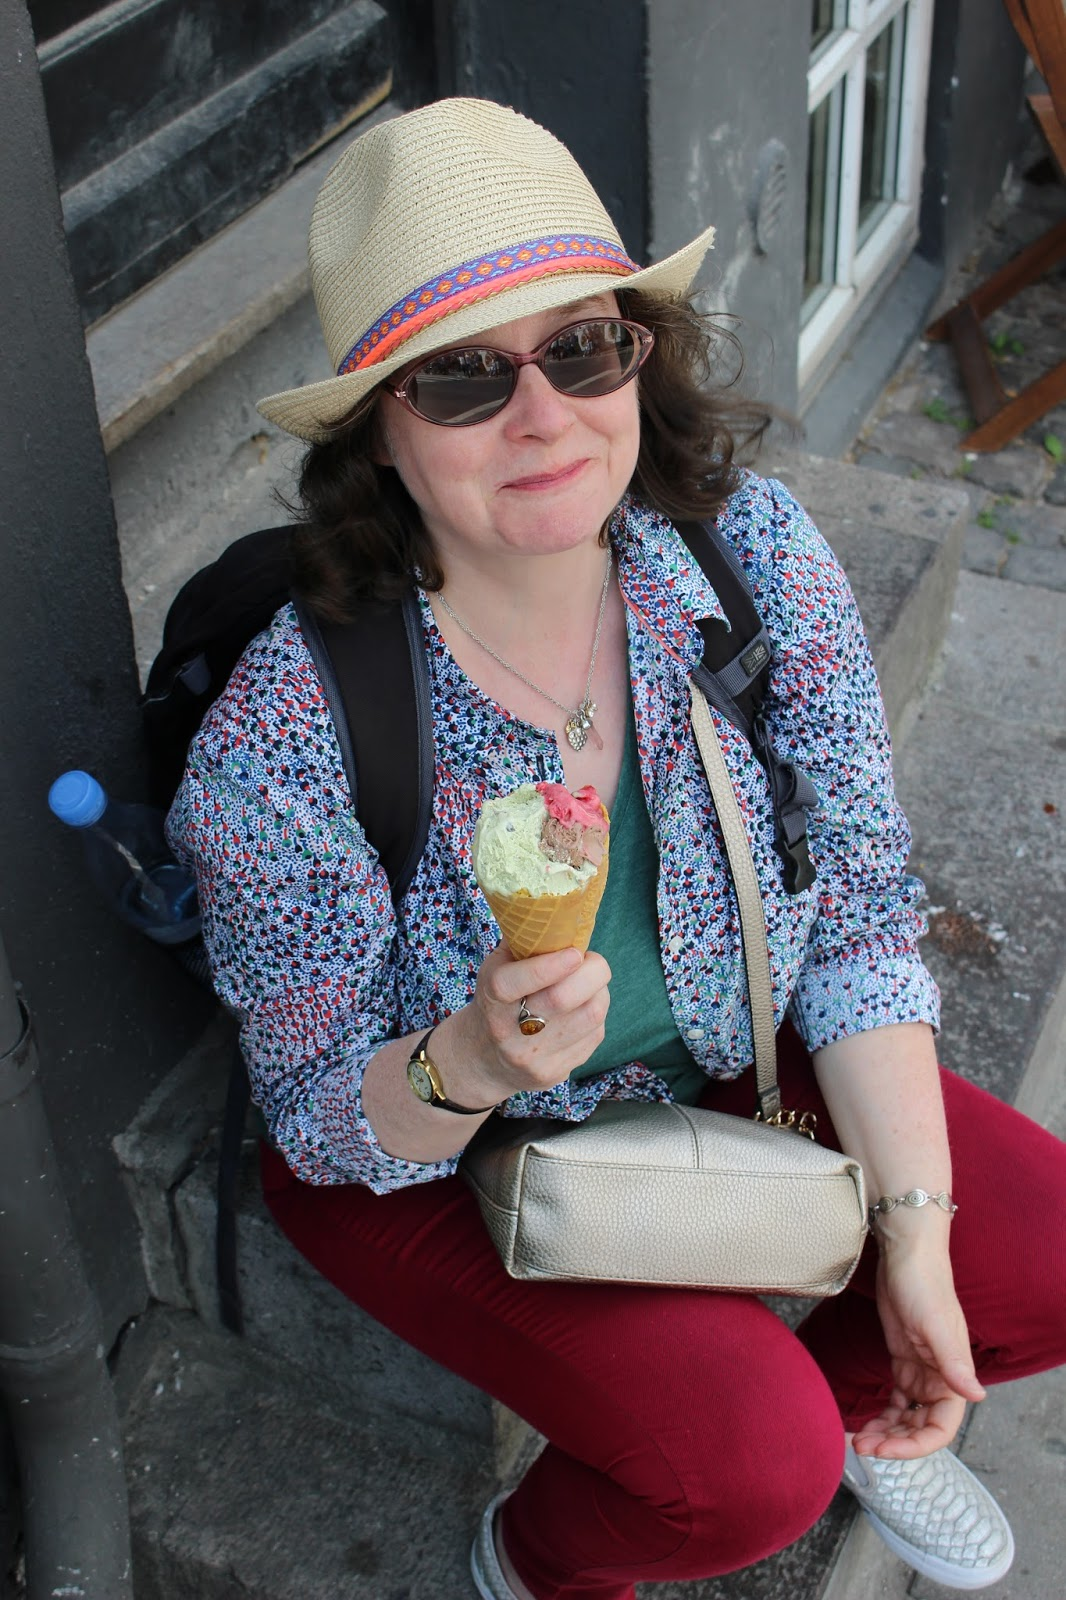 Dorothy Perkins Petite Jeans, Boden Petite Shirt, | Petite Silver Vixen eating ice cream